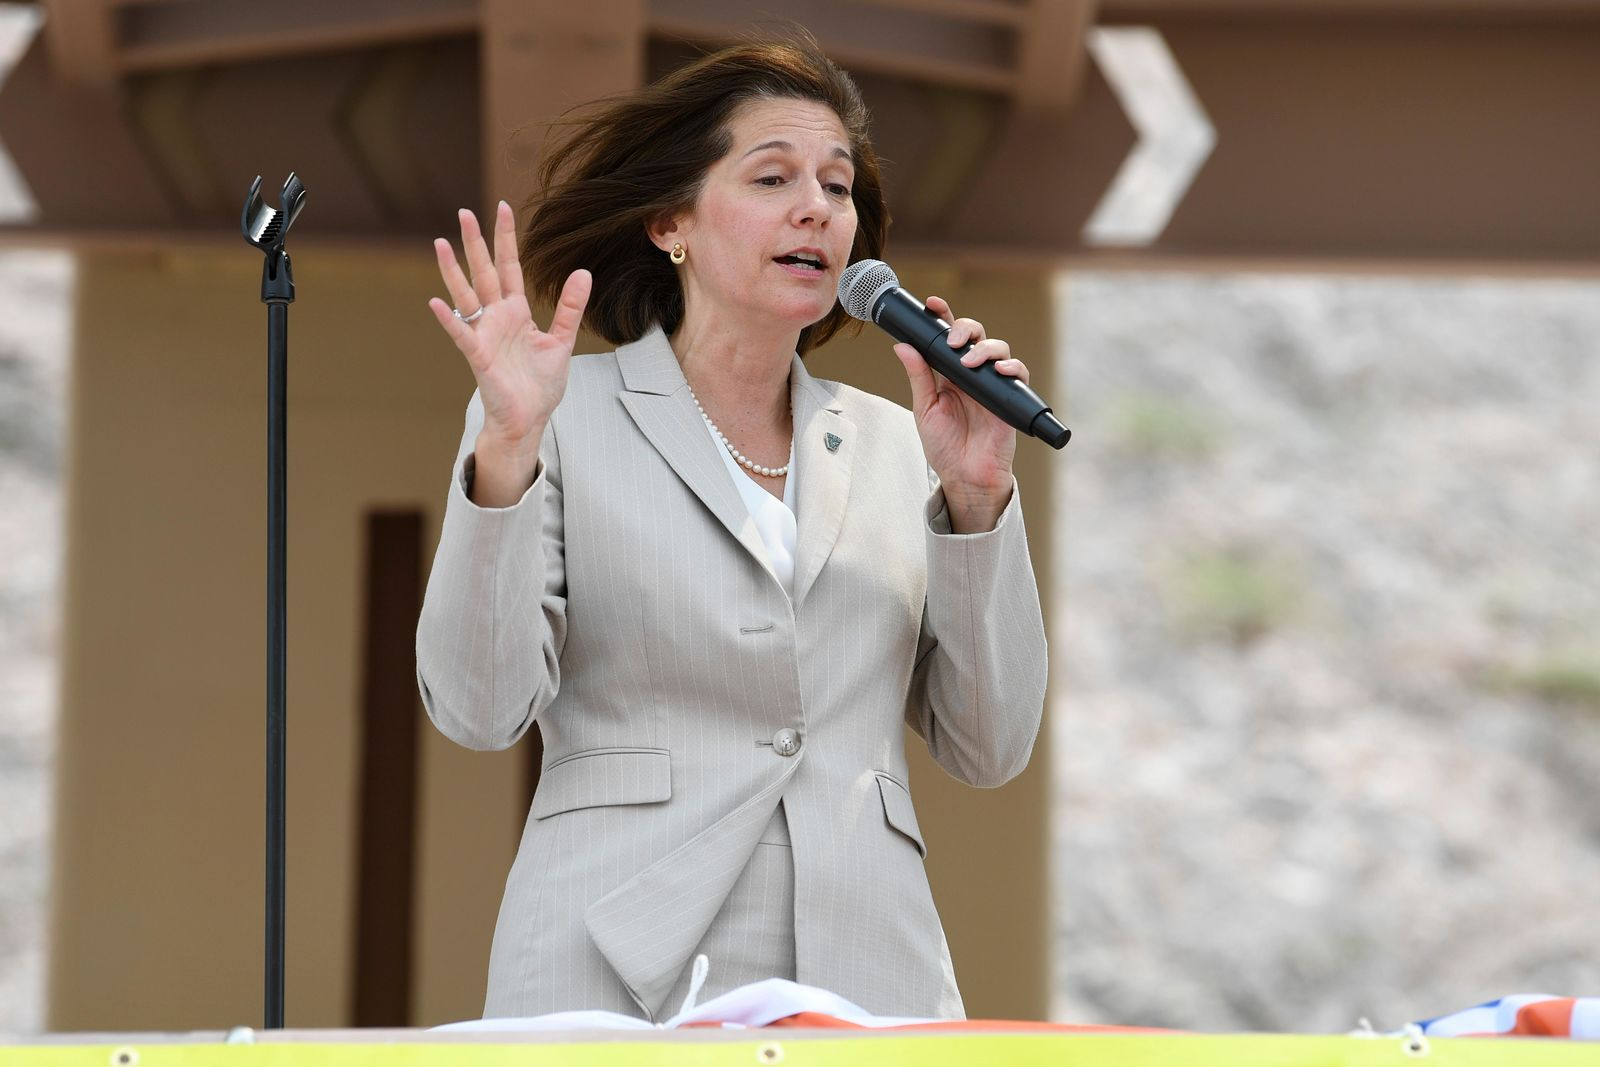 Sen. Catherine Cortez Masto, D-Nev., speaks during the grand opening of a new section of Interstate 11 Thursday, August 9, 2018, in Boulder City. The section, also referred to as the Boulder City Bypass, marks the official start of the I-11 project between Las Vegas and Phoenix. CREDIT: Sam Morris/Las Vegas News Bureau